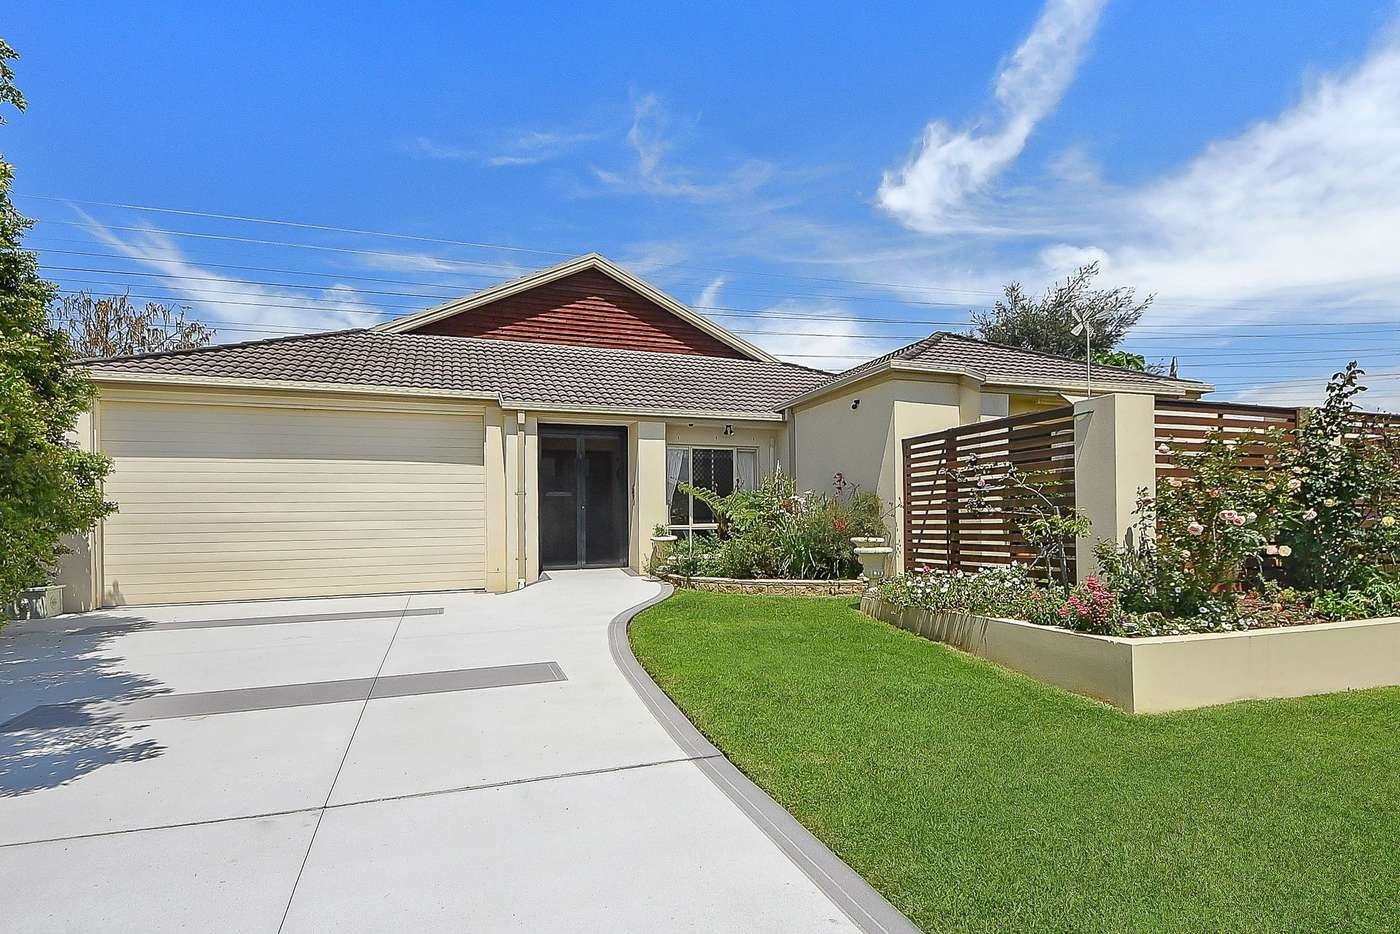 Main view of Homely house listing, 8 Putney Court, Murrumba Downs QLD 4503